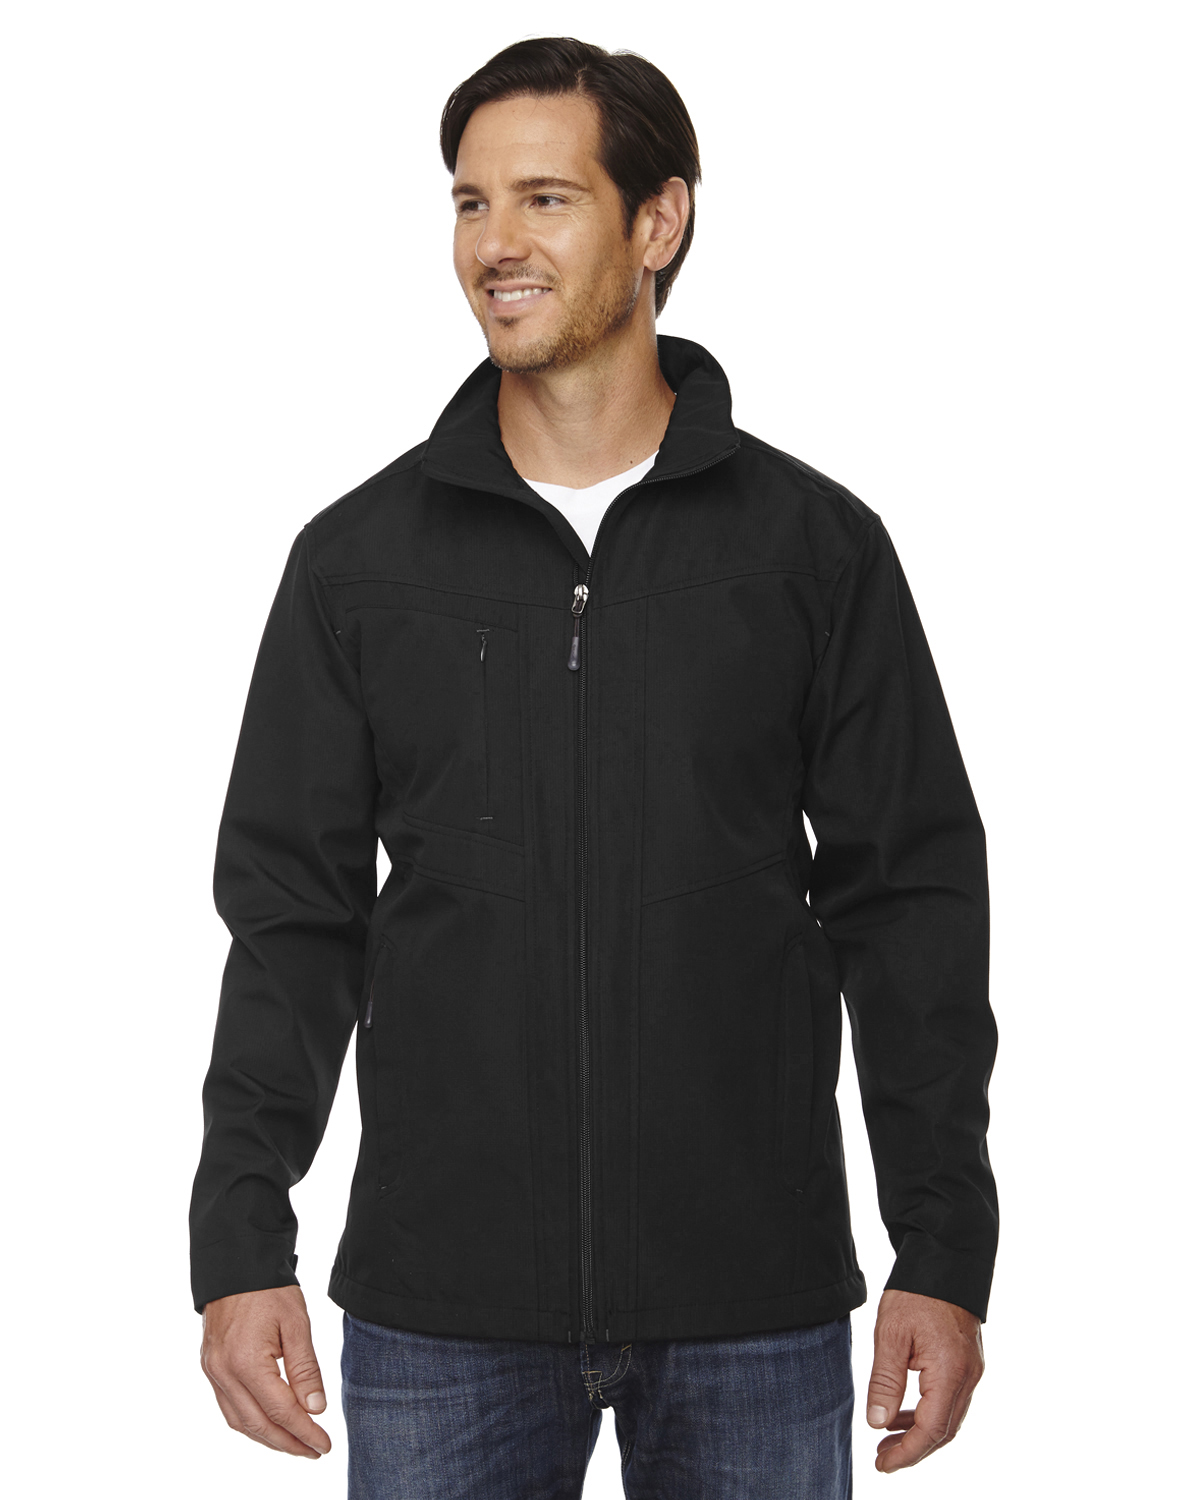 Ash City - North End 88212 - Men's Forecast Three-Layer Light Bonded Travel Soft Shell Jacket